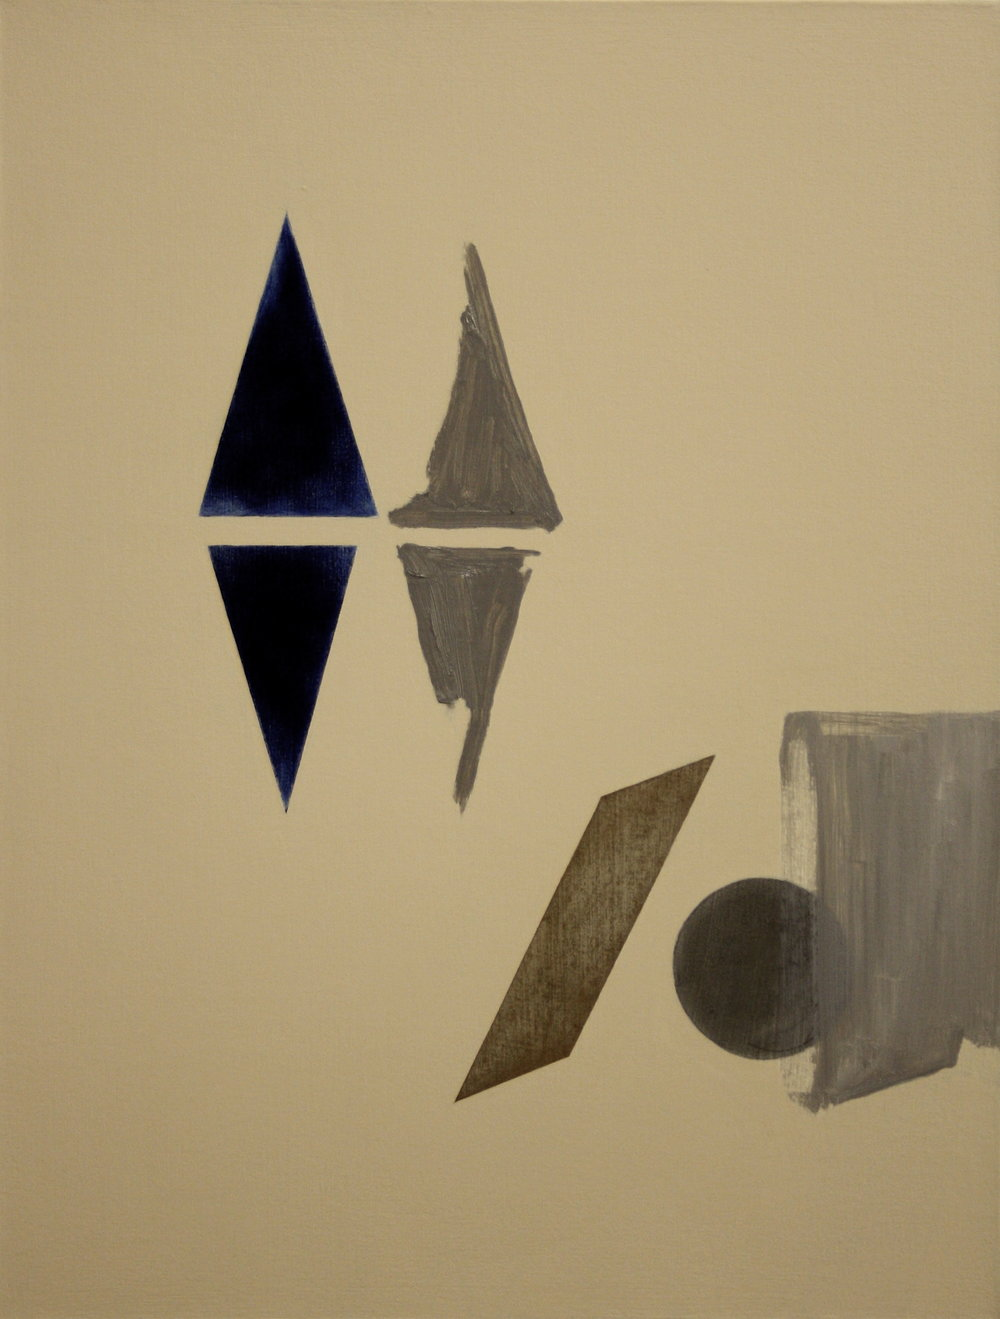 Degrees of Separation 3, 2010, oil, acrylic and graphite on canvas, 56 x 43 cm